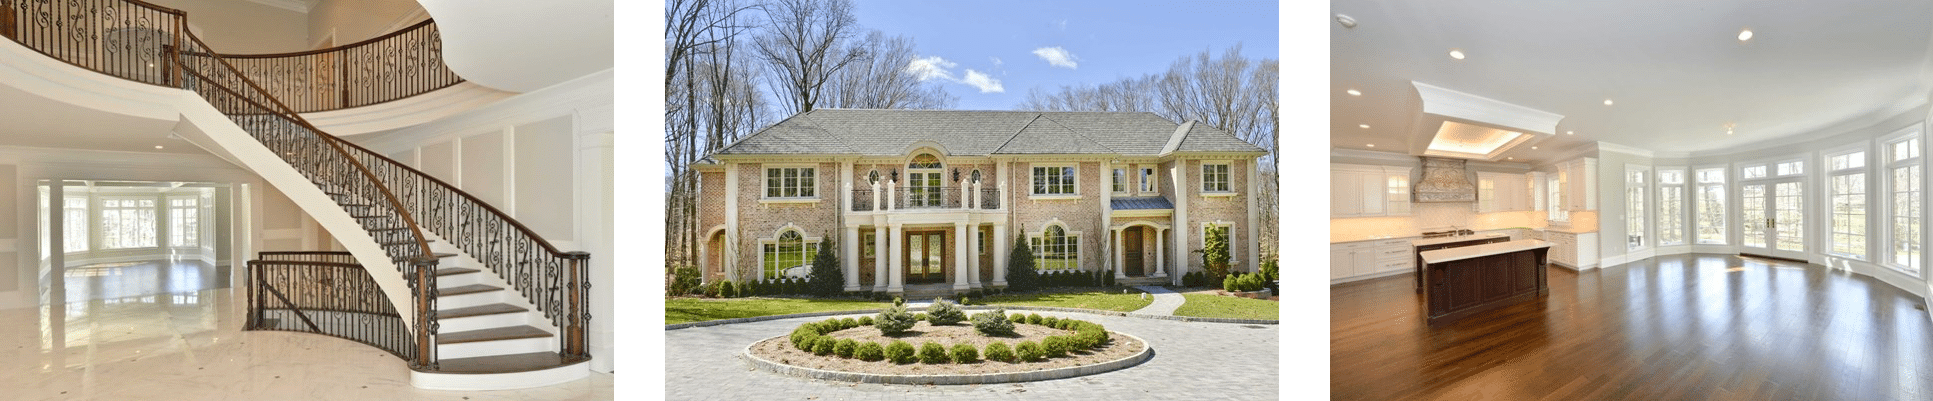 luxury houses for sale in saddle river, nj